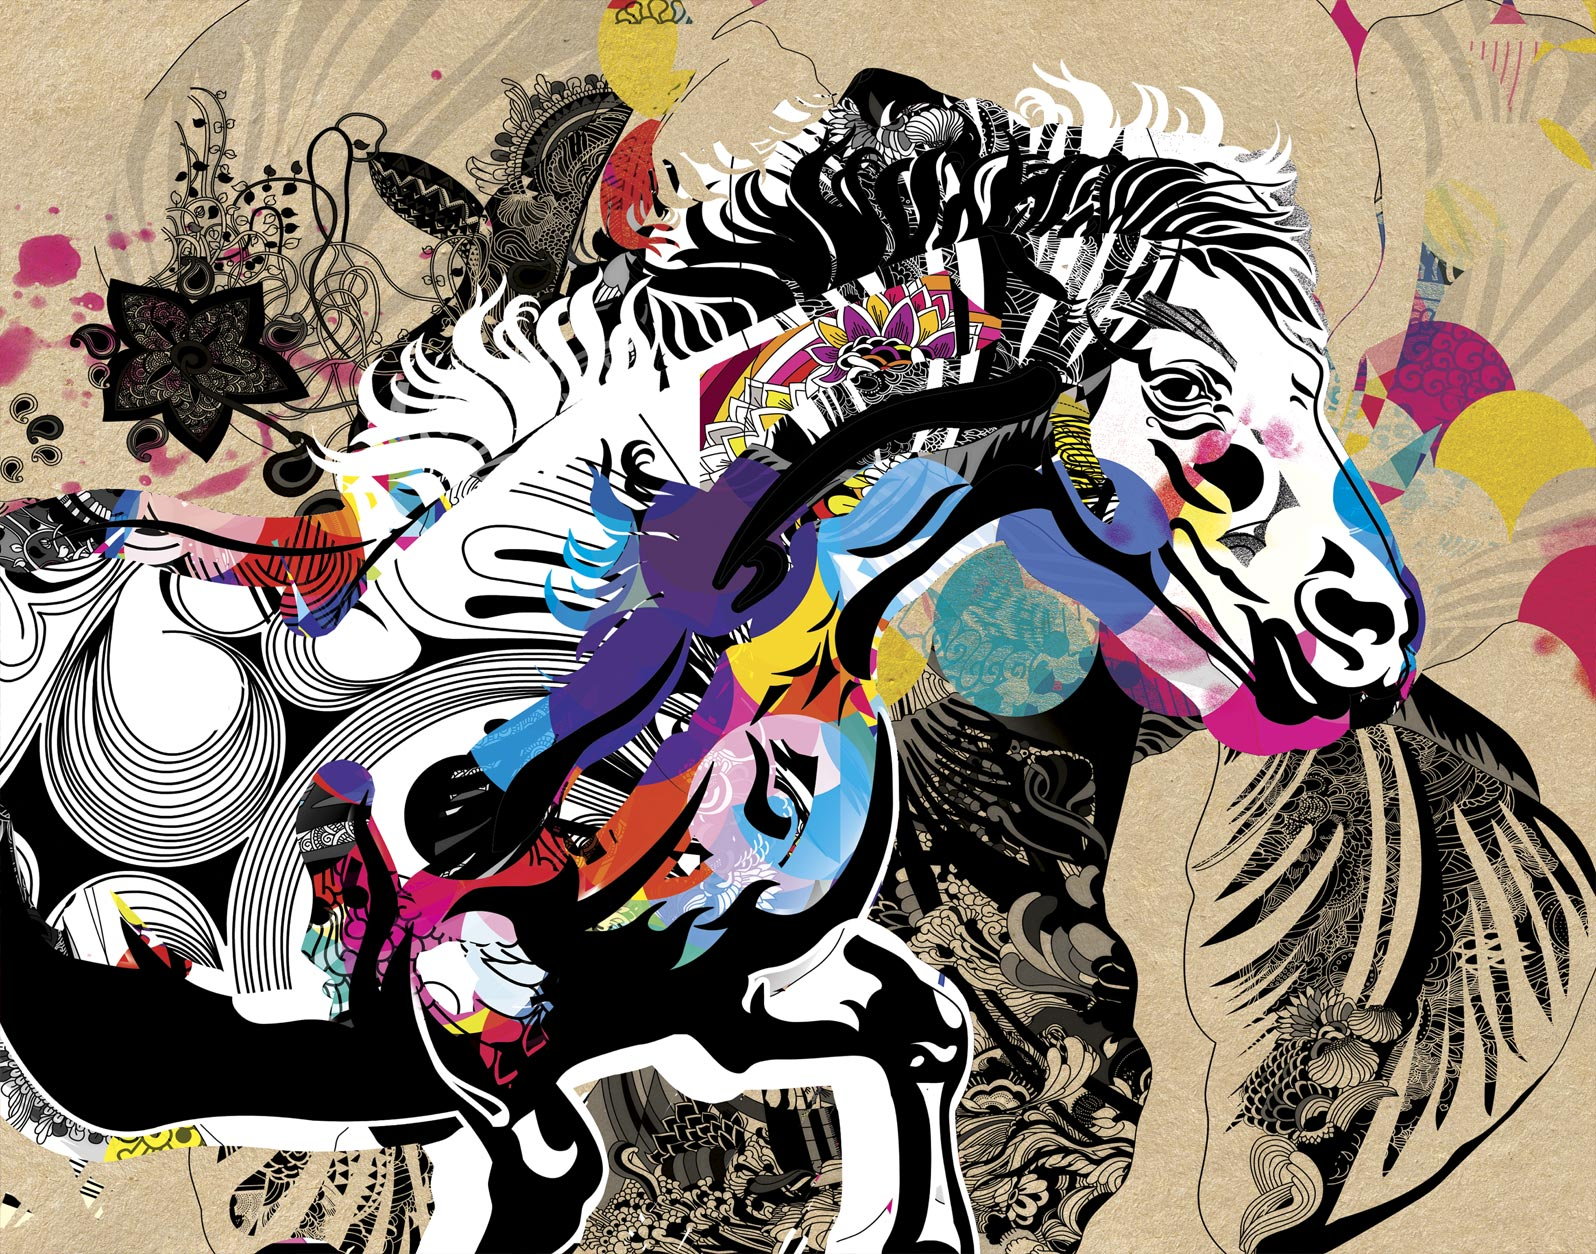 Anca Stefanescu | For I Love Horses Digital Art, Limited Edition Print On Canvas